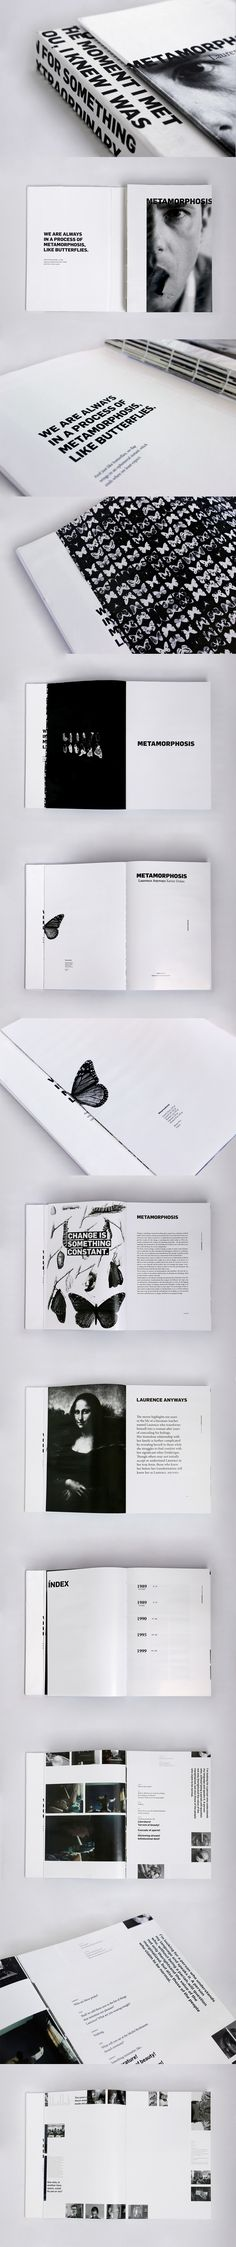 METAMORPHOSIS on Behance